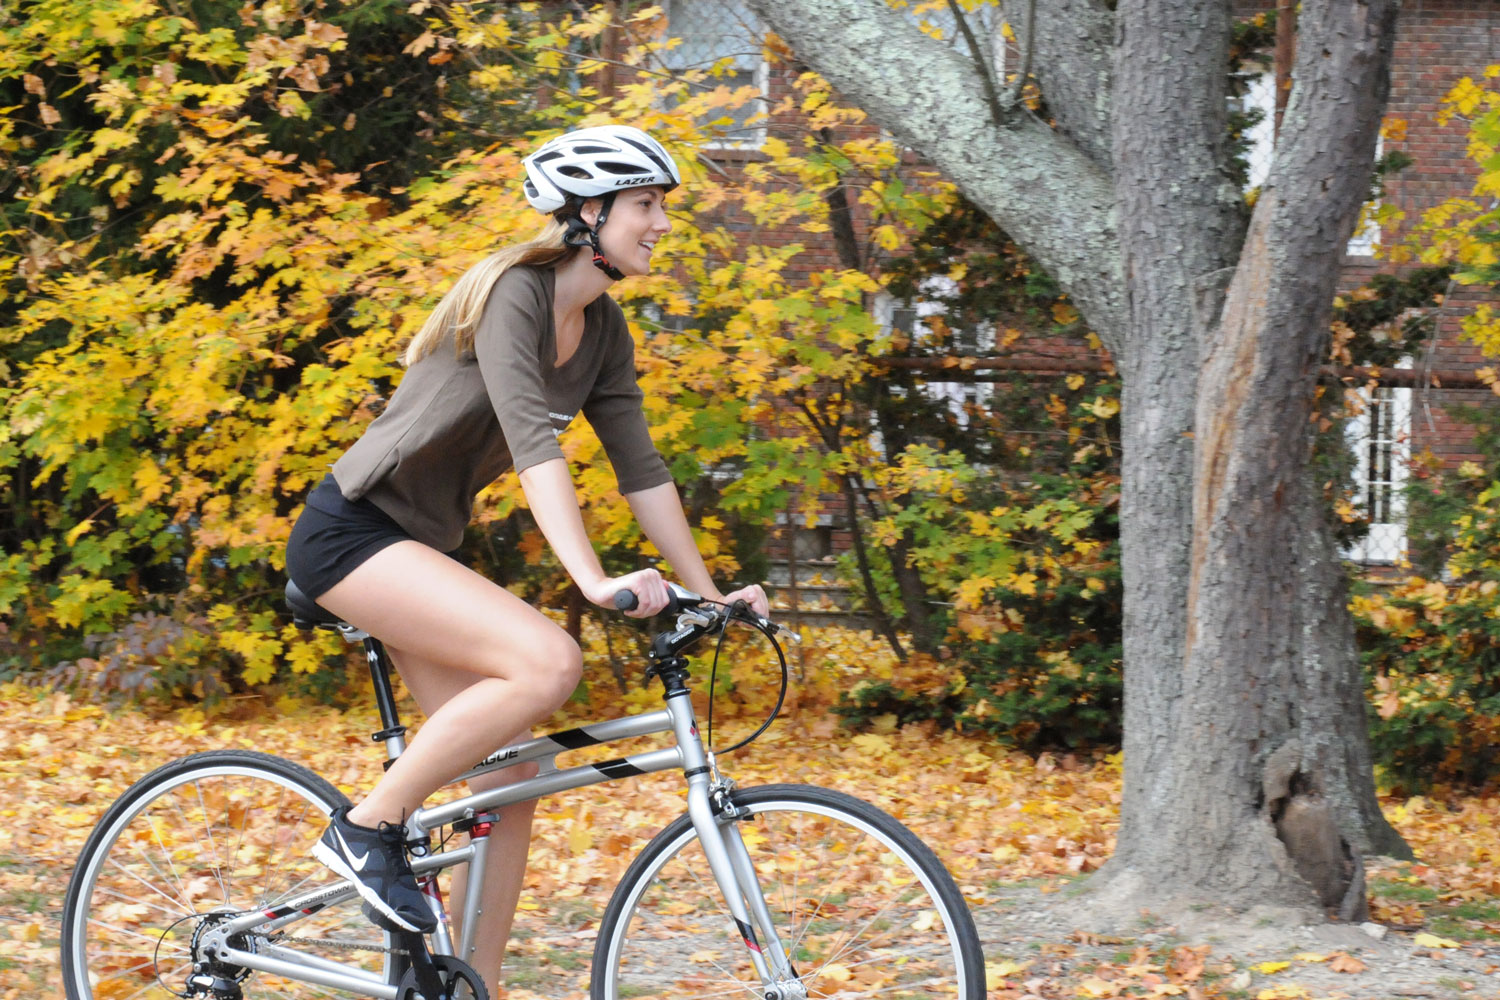 Crosstown-woman-riding-in-autumn